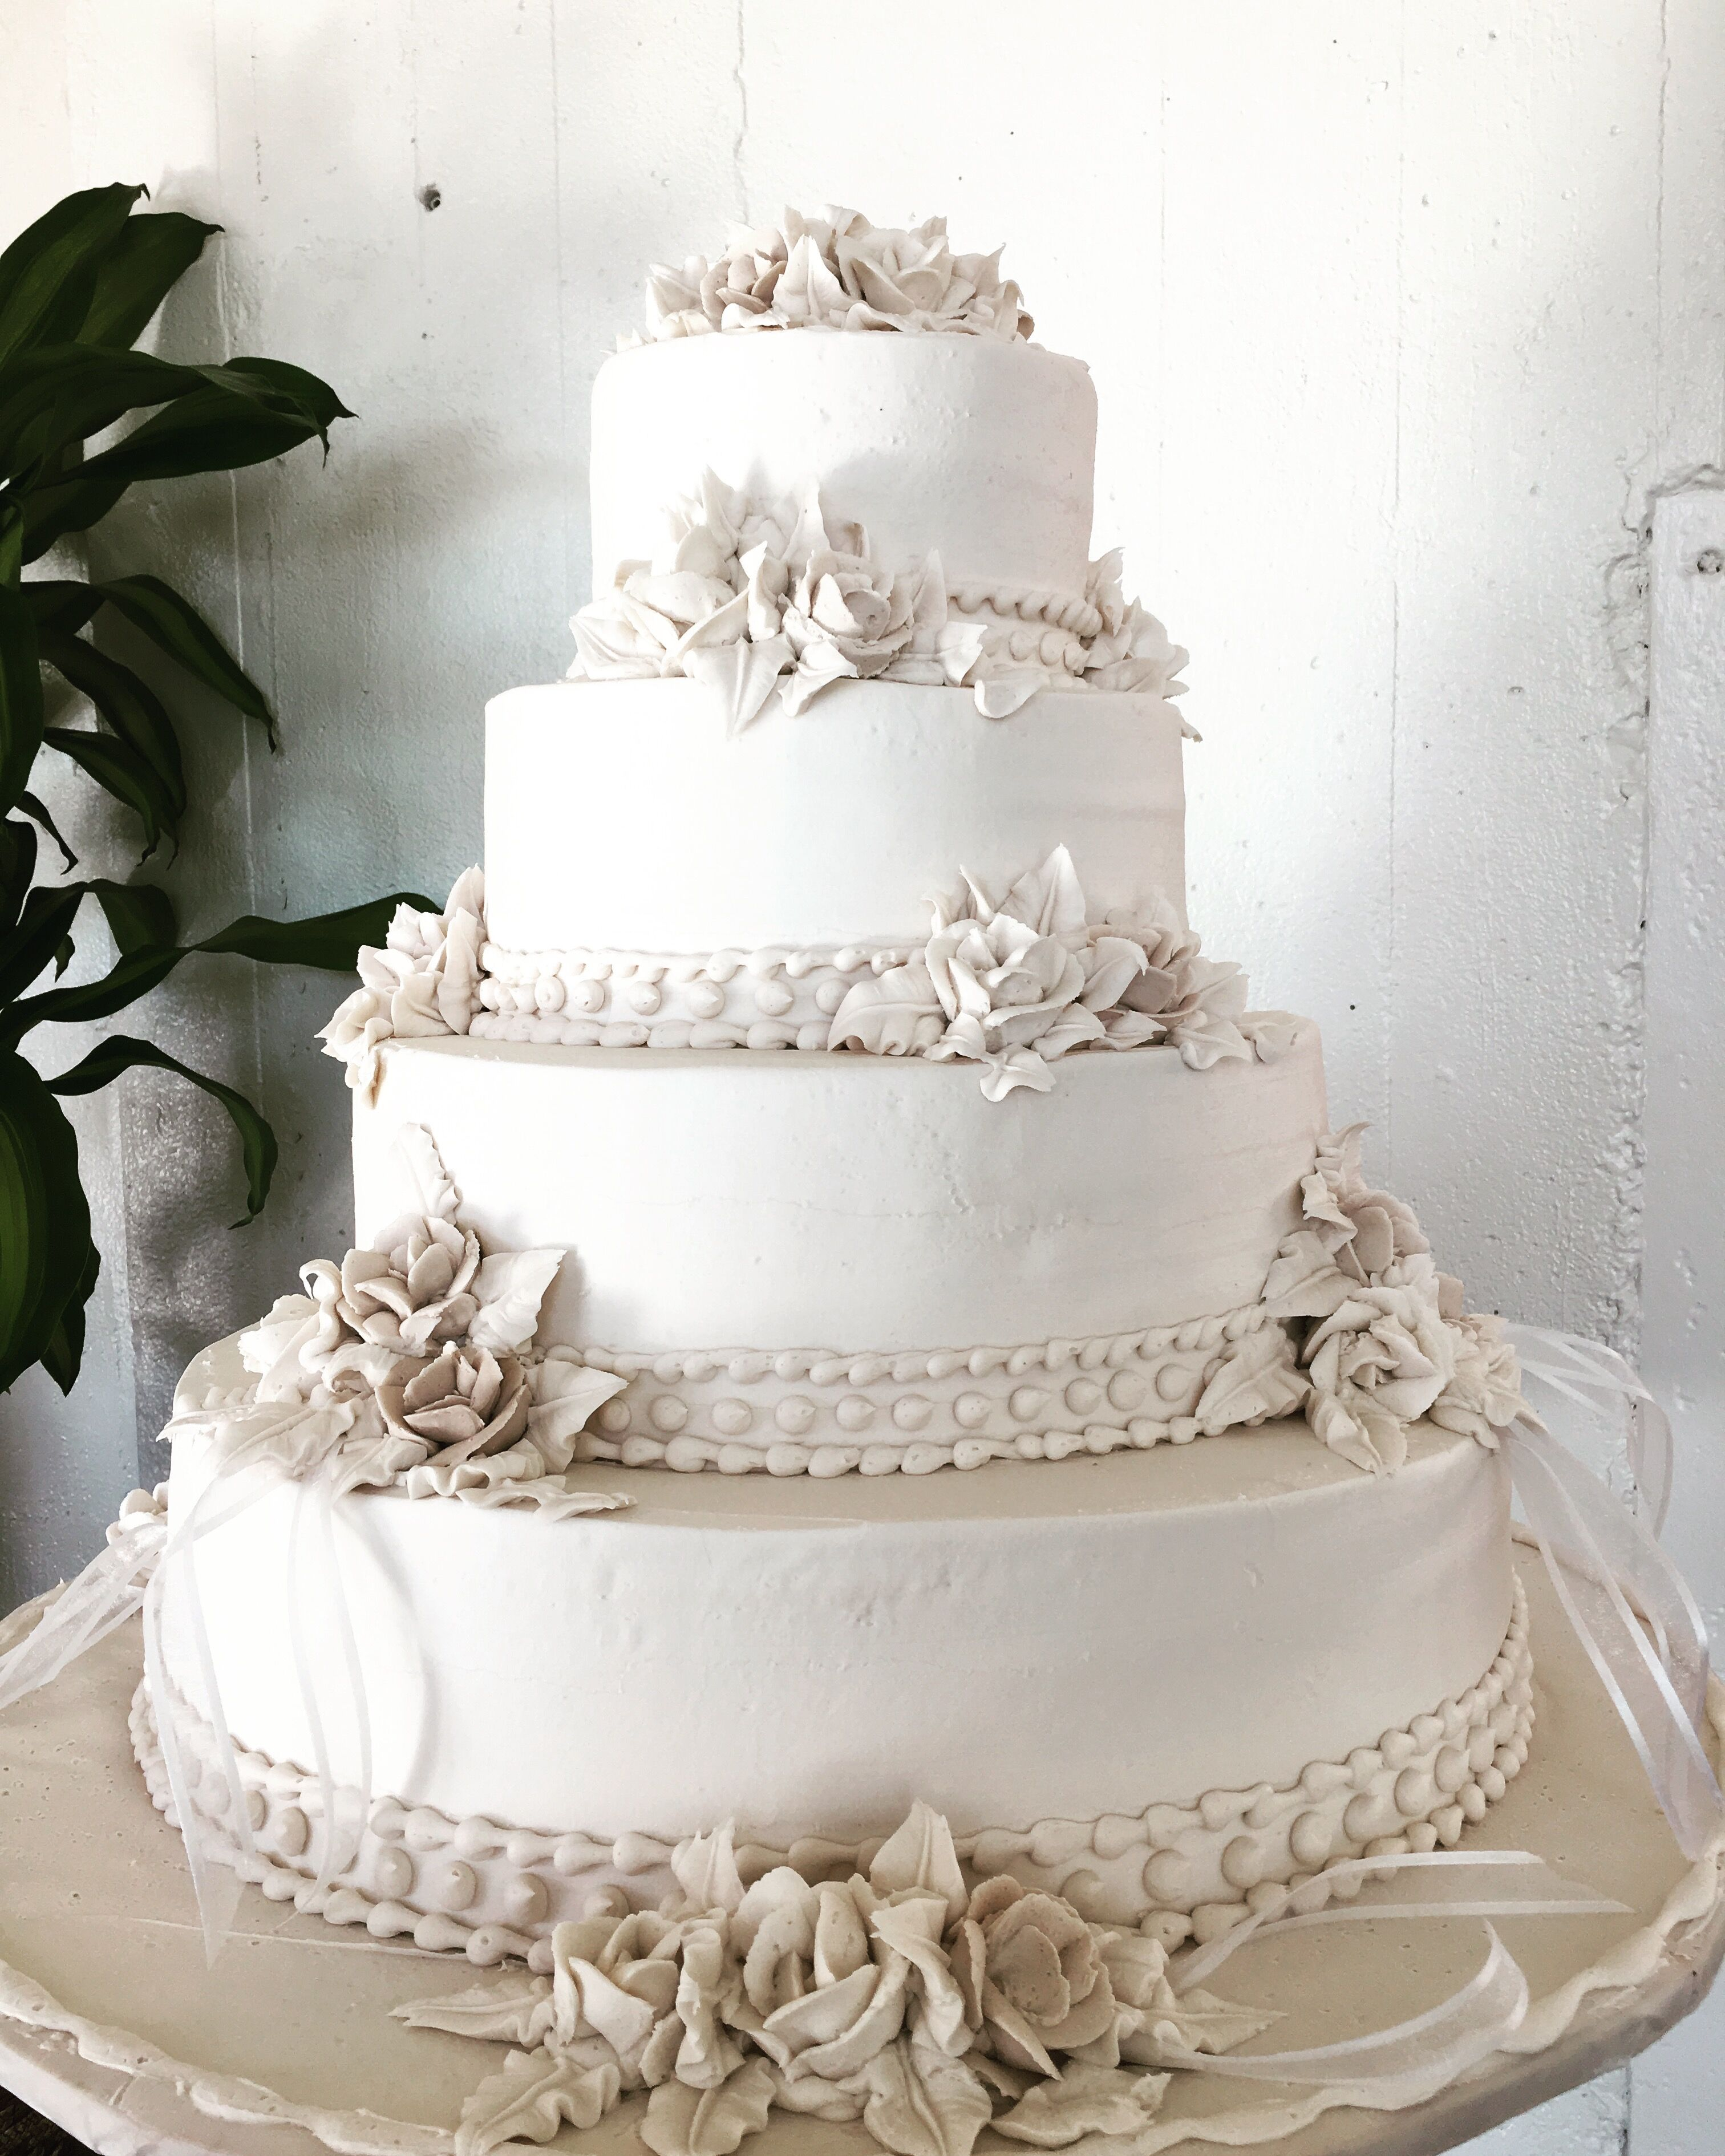 Wedding Cake 101 An Introduction To Wedding Cakes: Wedding Cakes - New Orleans, LA